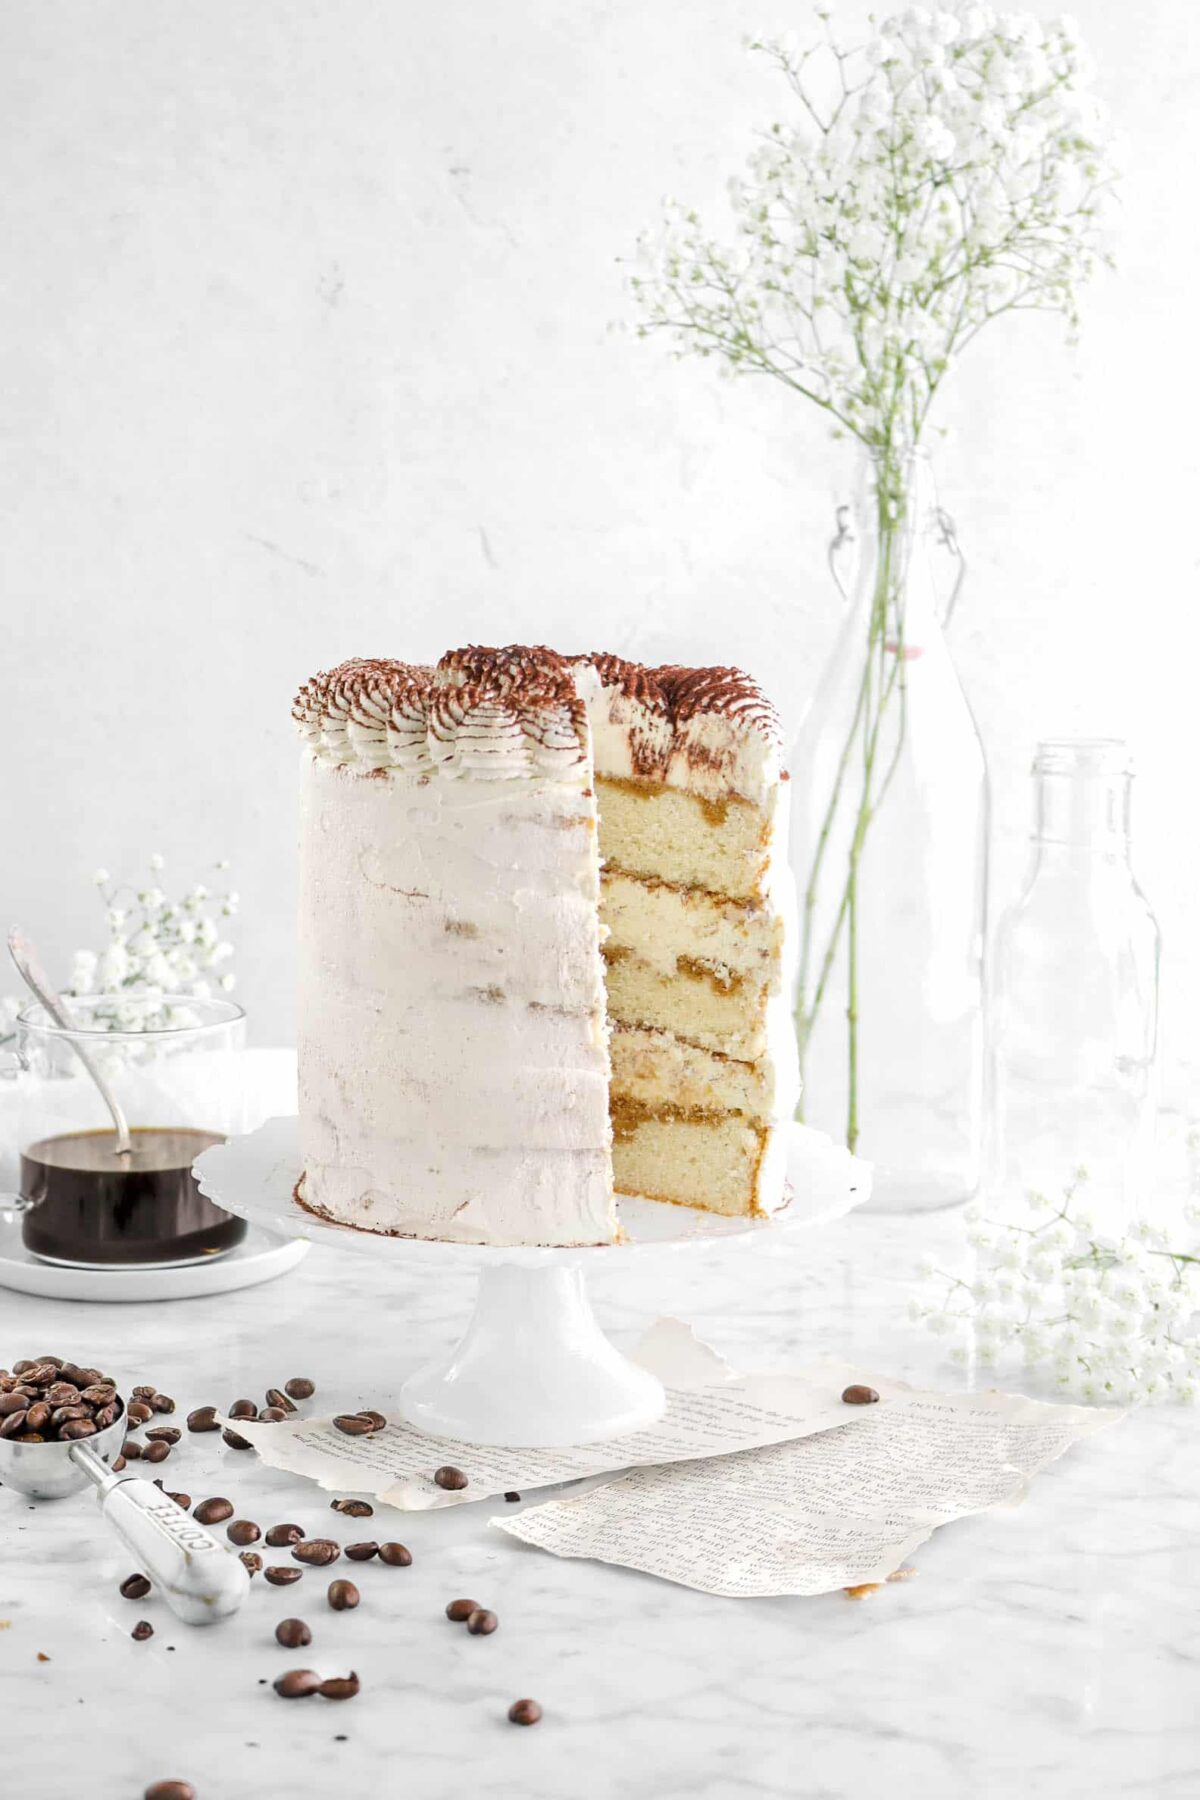 tiramisu cake with a slice missing, cocoa beans, flowers, and a cup of coffee